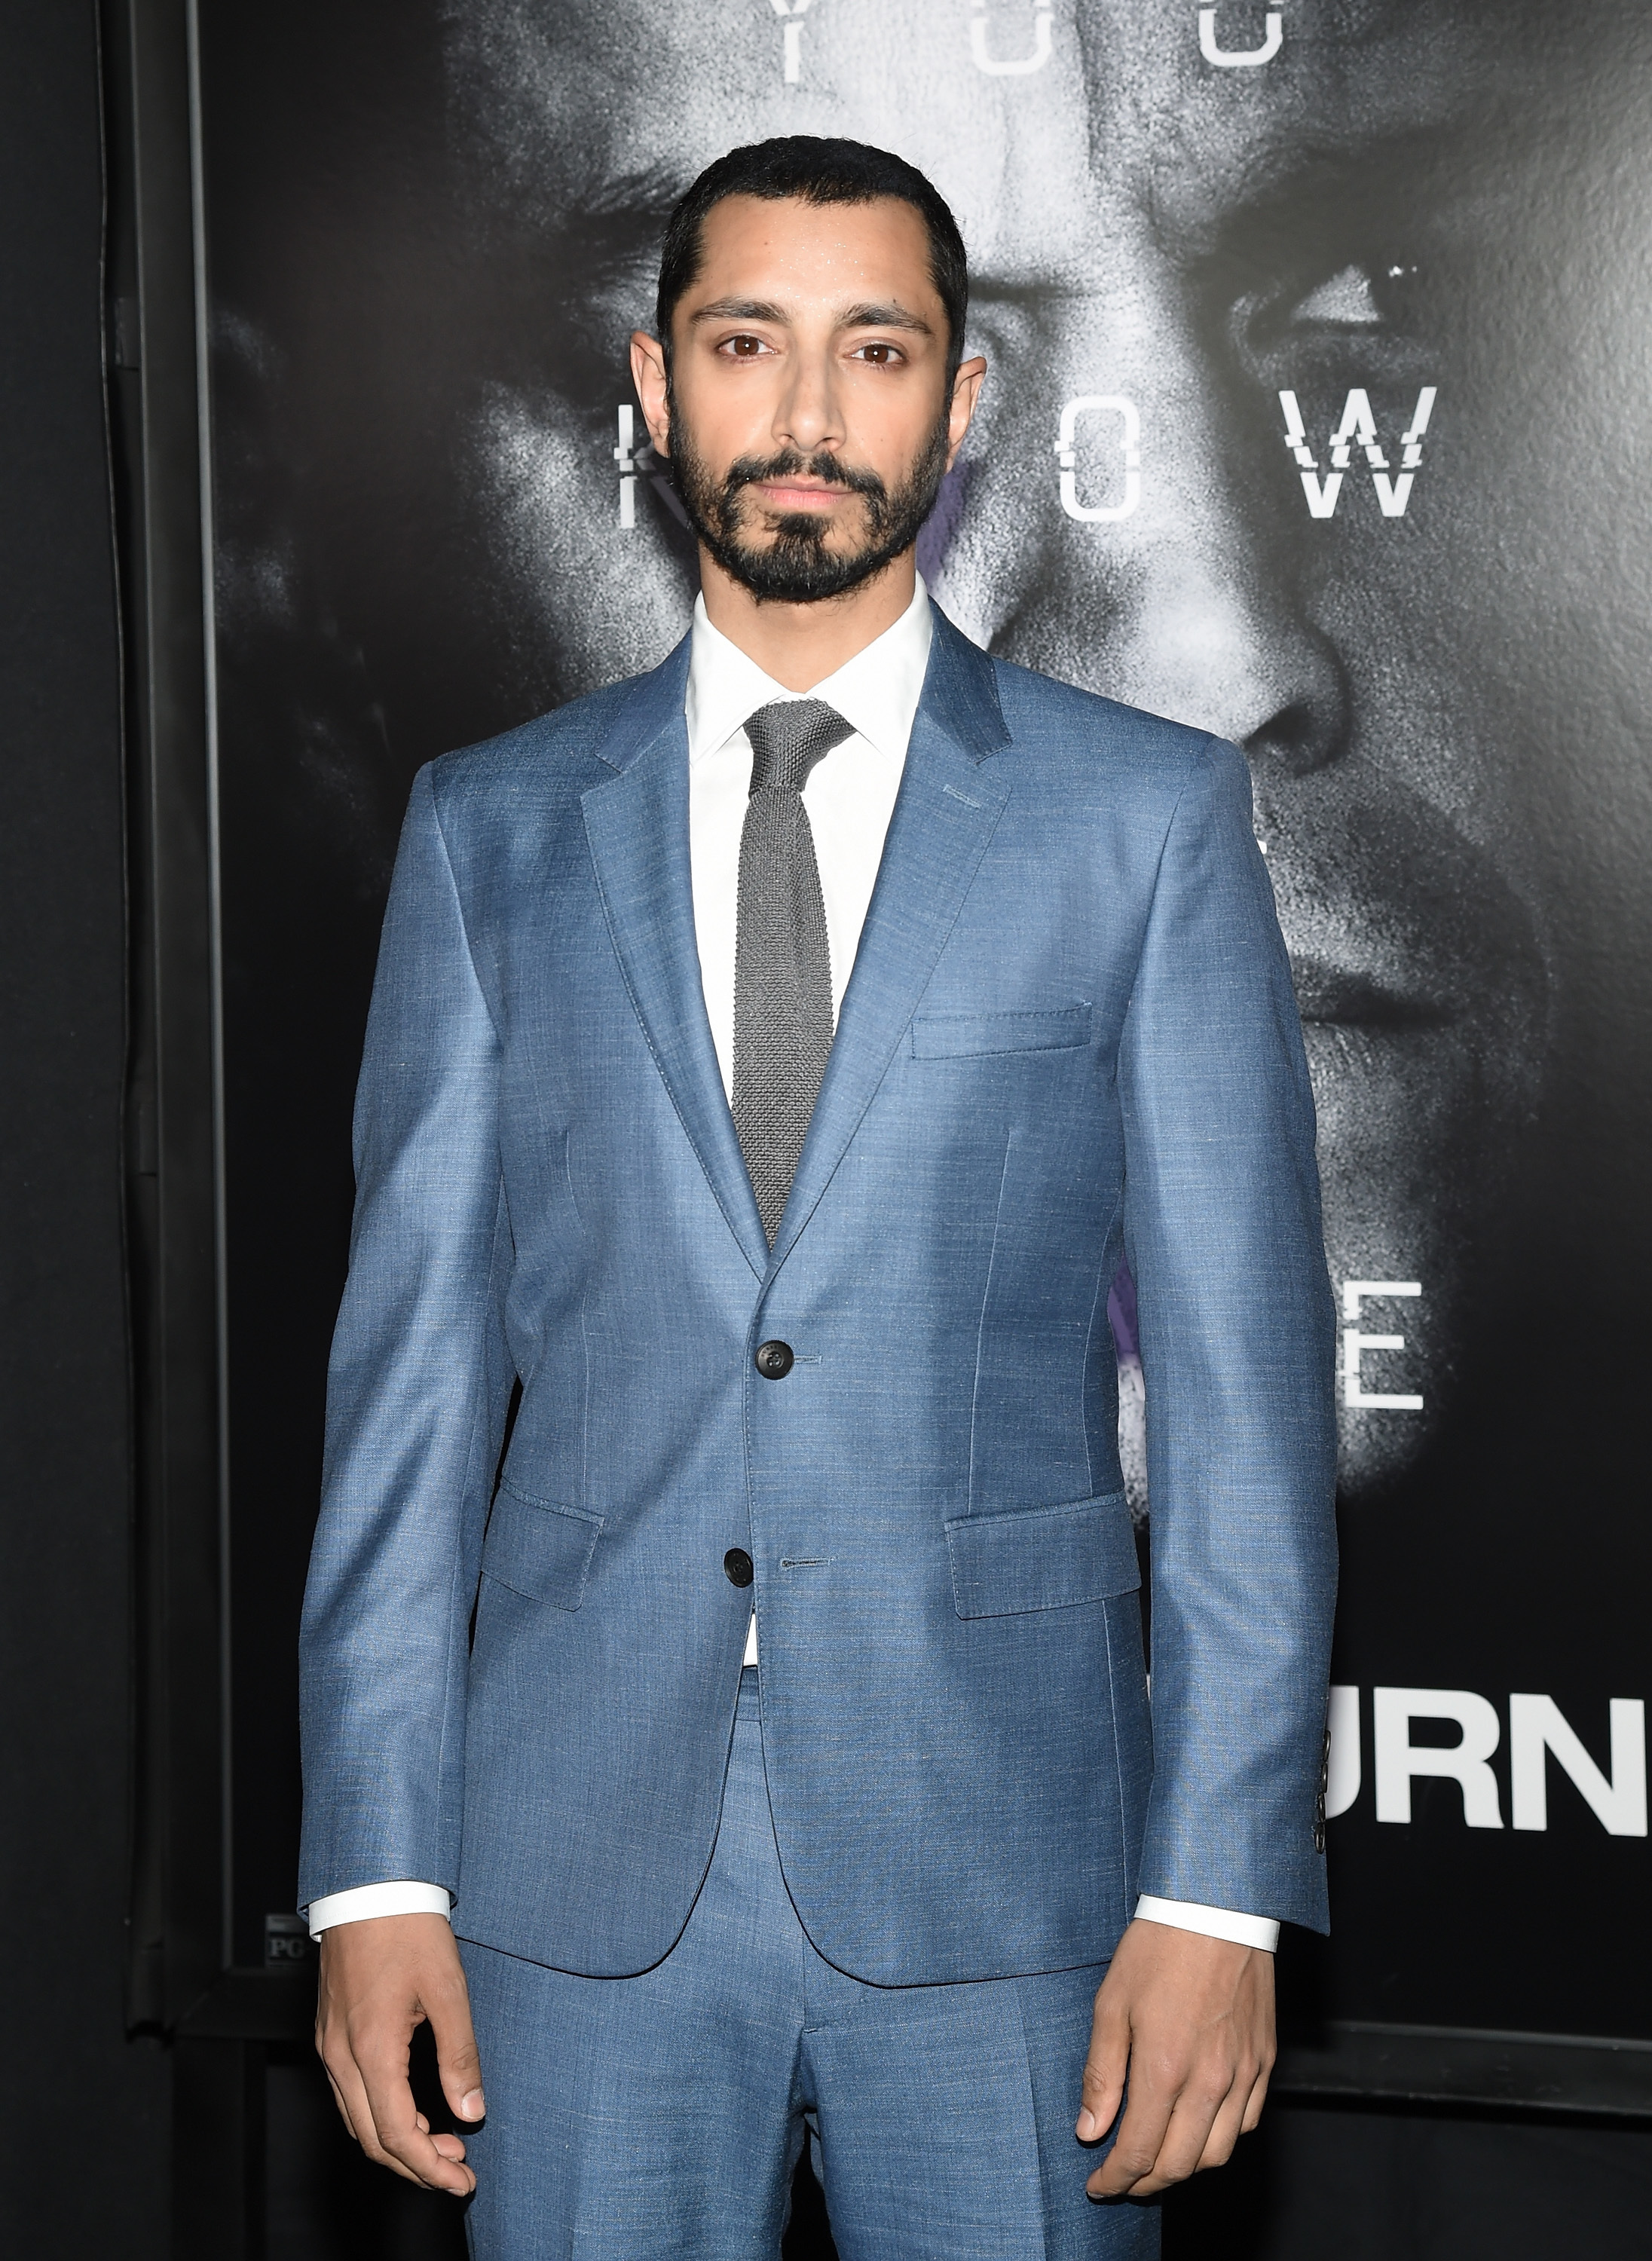 LAS VEGAS, NV - JULY 18:  Actor/rapper Riz Ahmed attends the premiere of Universal Pictures' 'Jason Bourne' at The Colosseum at Caesars Palace on July 18, 2016 in Las Vegas, Nevada.  (Photo by Ethan Miller/Getty Images)